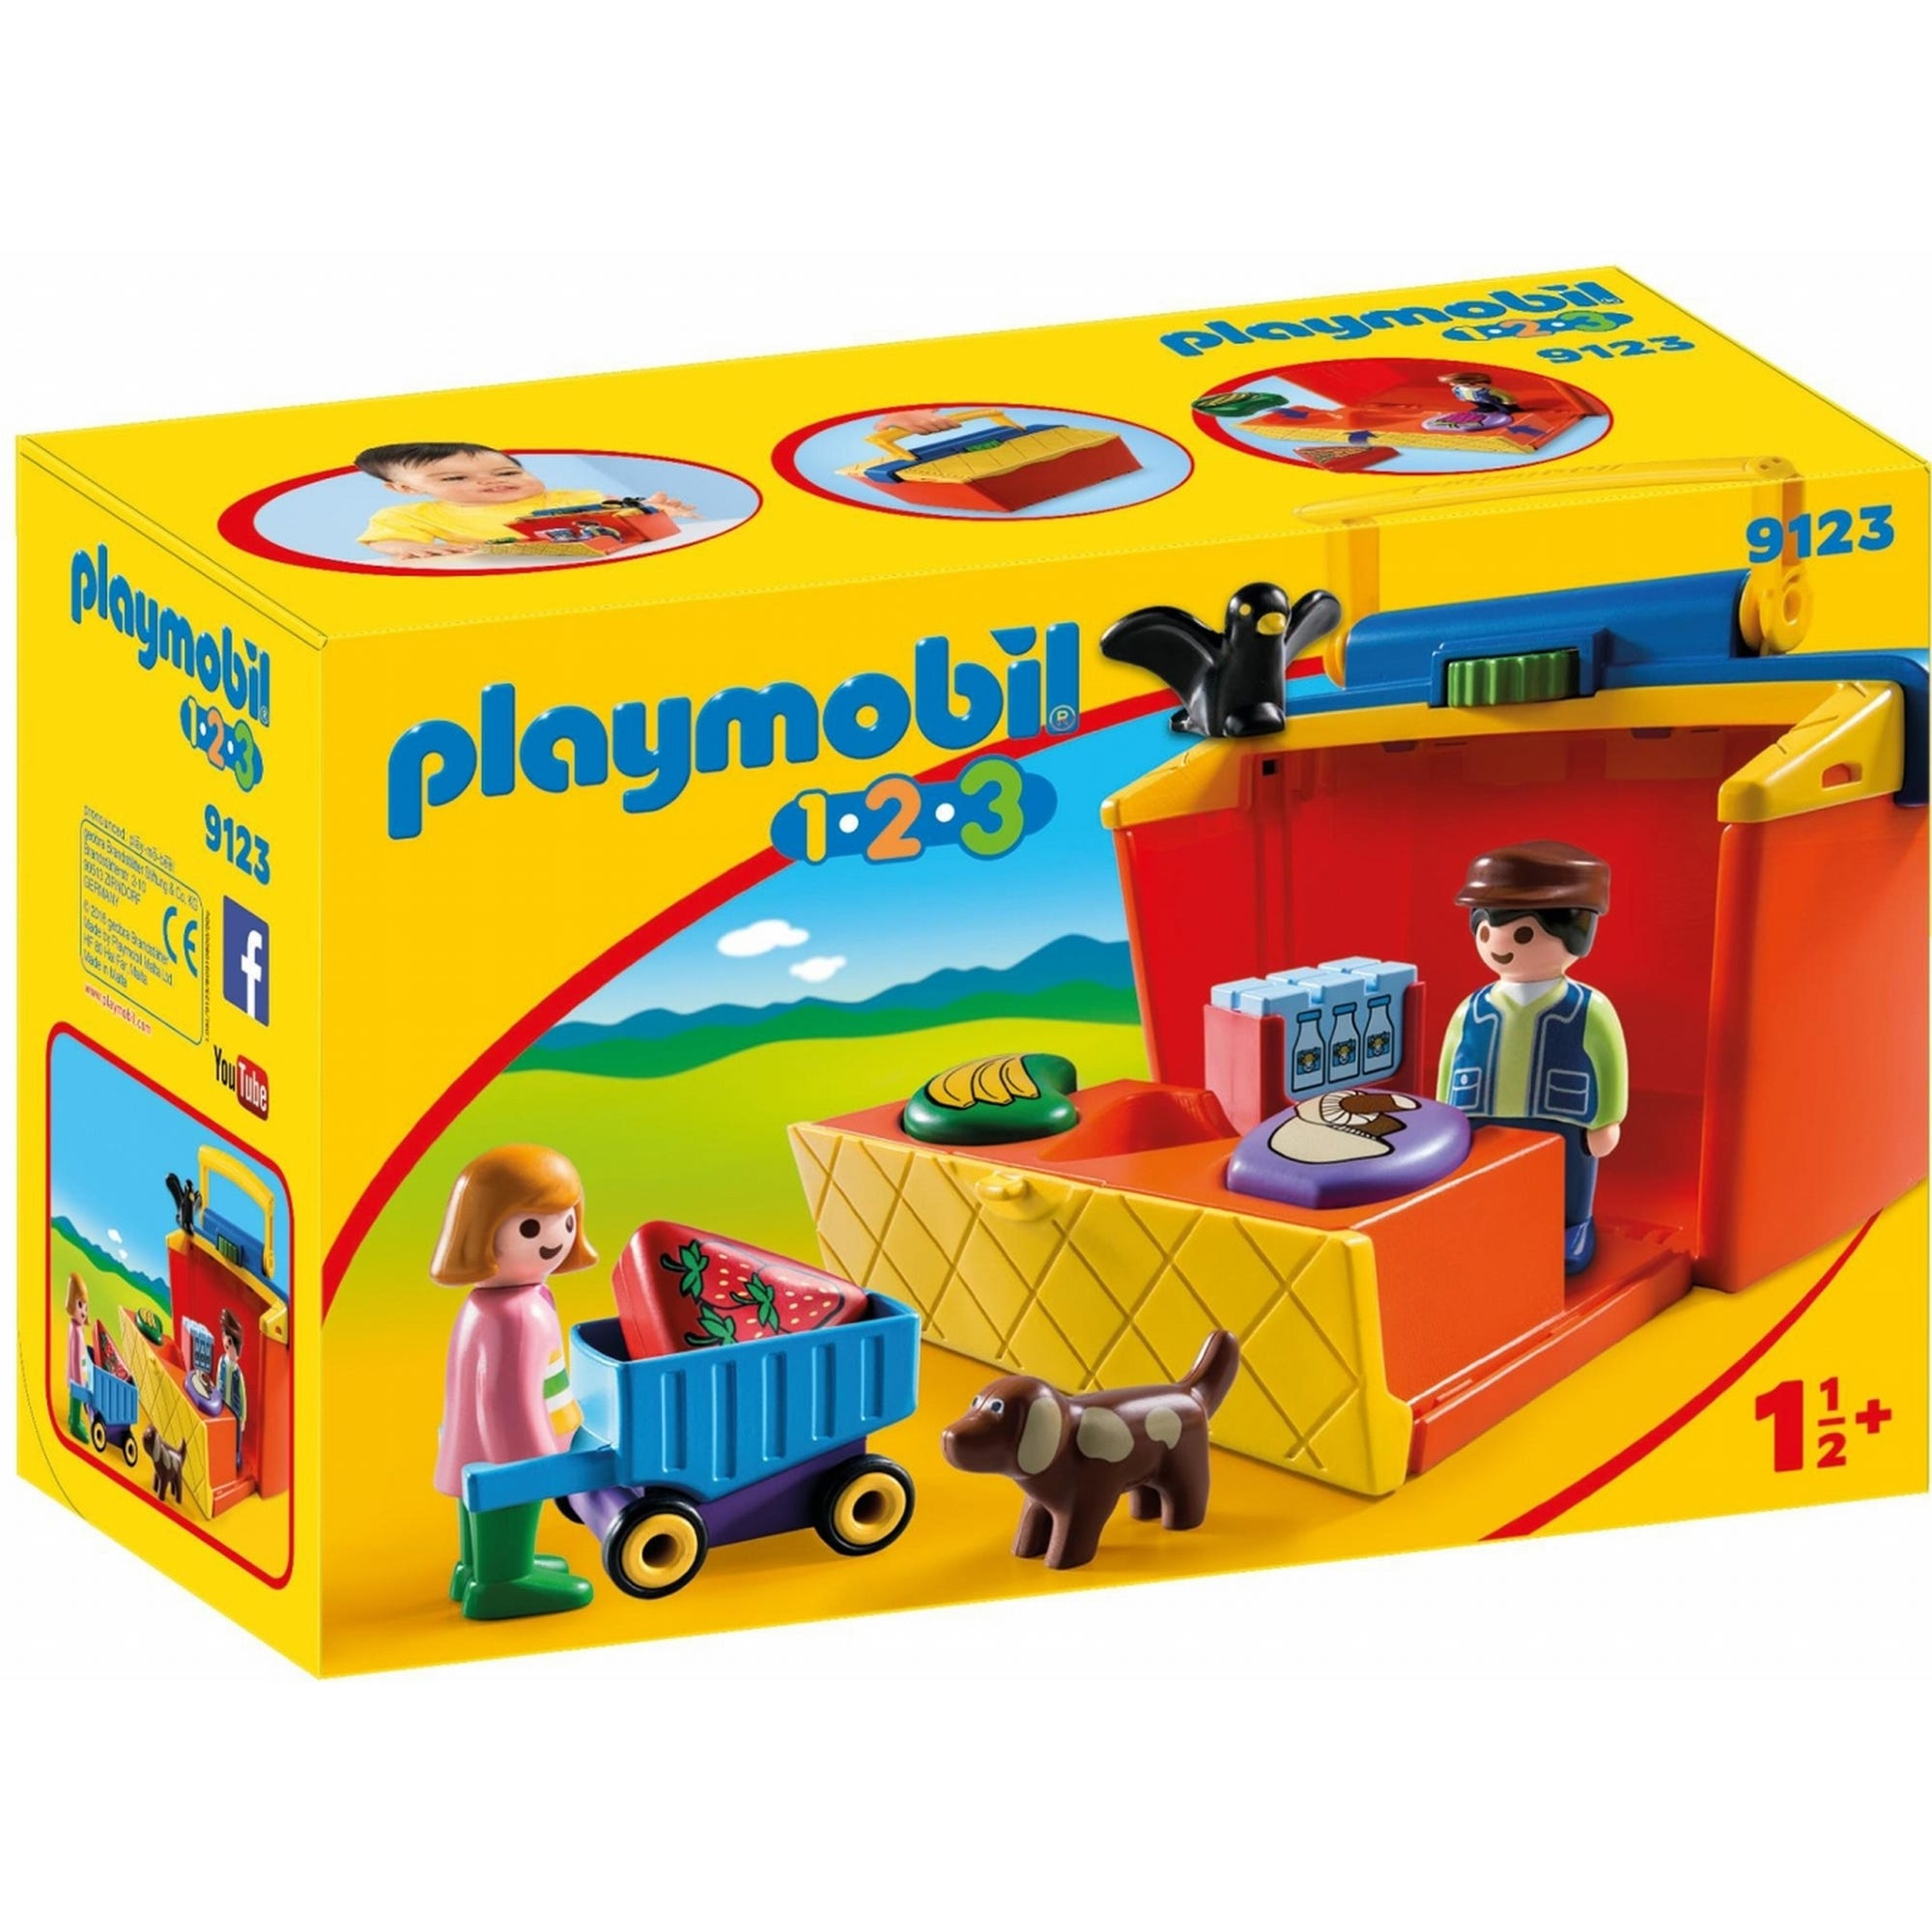 Playmobil 123 Take Along Market Stall 9123